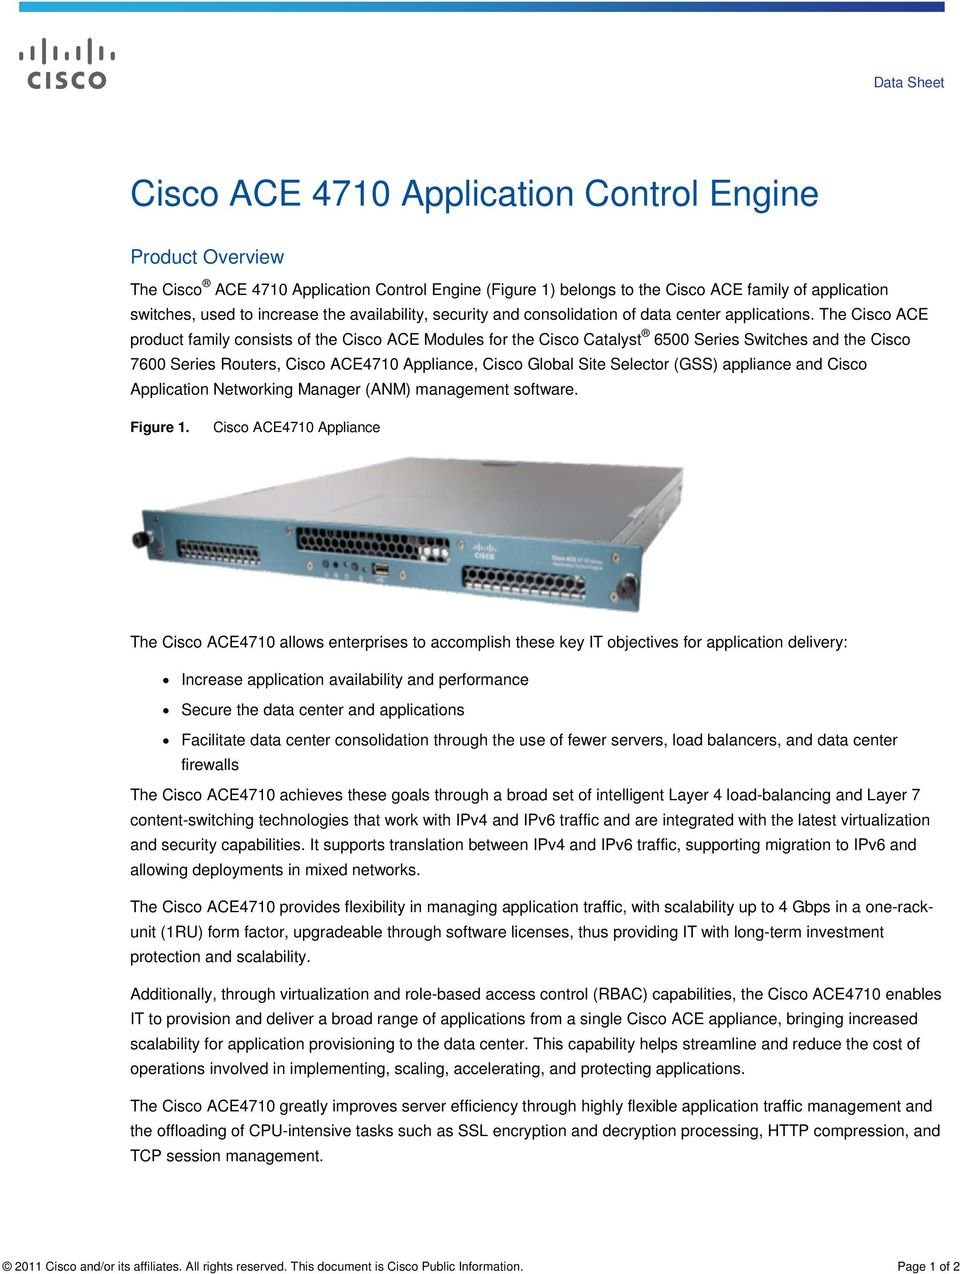 The Cisco ACE product family consists of the Cisco ACE Modules for the Cisco Catalyst 6500 Series Switches and the Cisco 7600 Series Routers, Cisco ACE4710 Appliance, Cisco Global Site Selector (GSS)